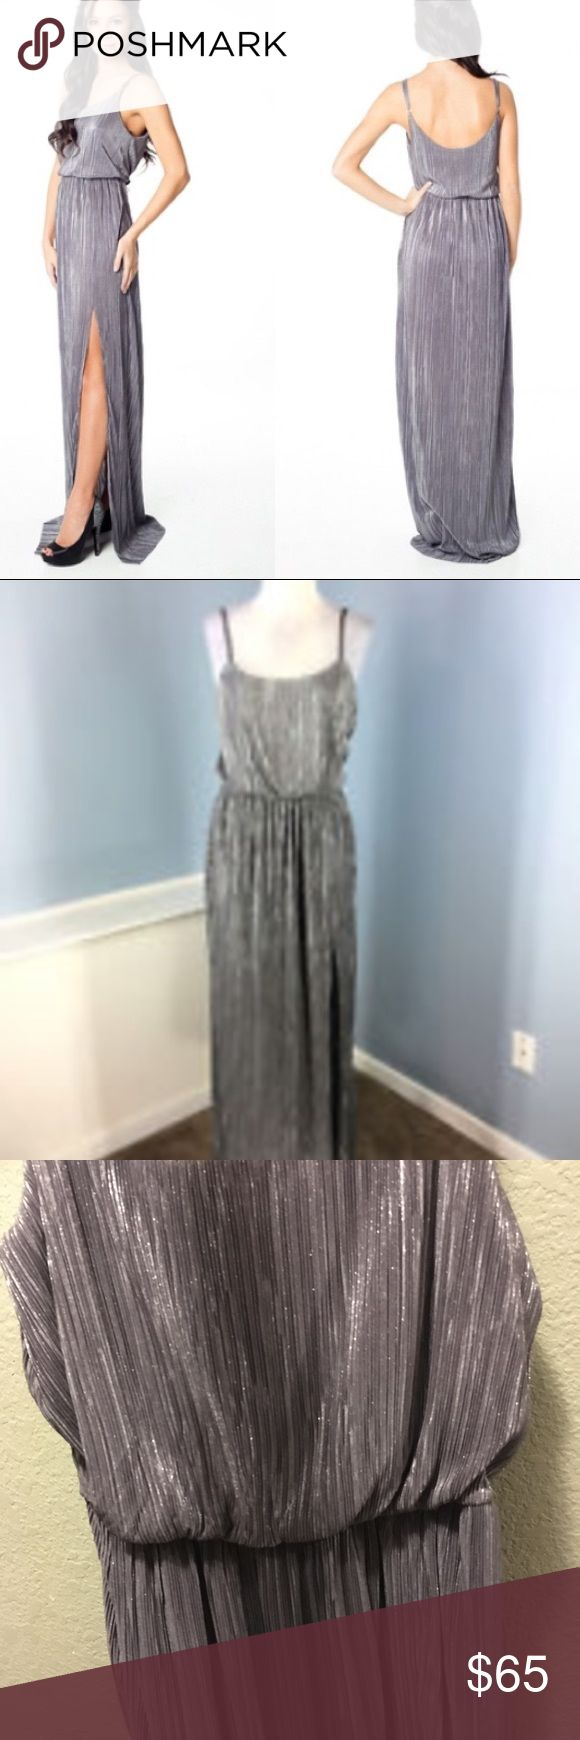 BCBGeneration High Slit Metallic maxi dress. Small Awesome dress. Worn once for a few hours. perfect condition. Smoke free home. BCBGeneration Dresses Maxi